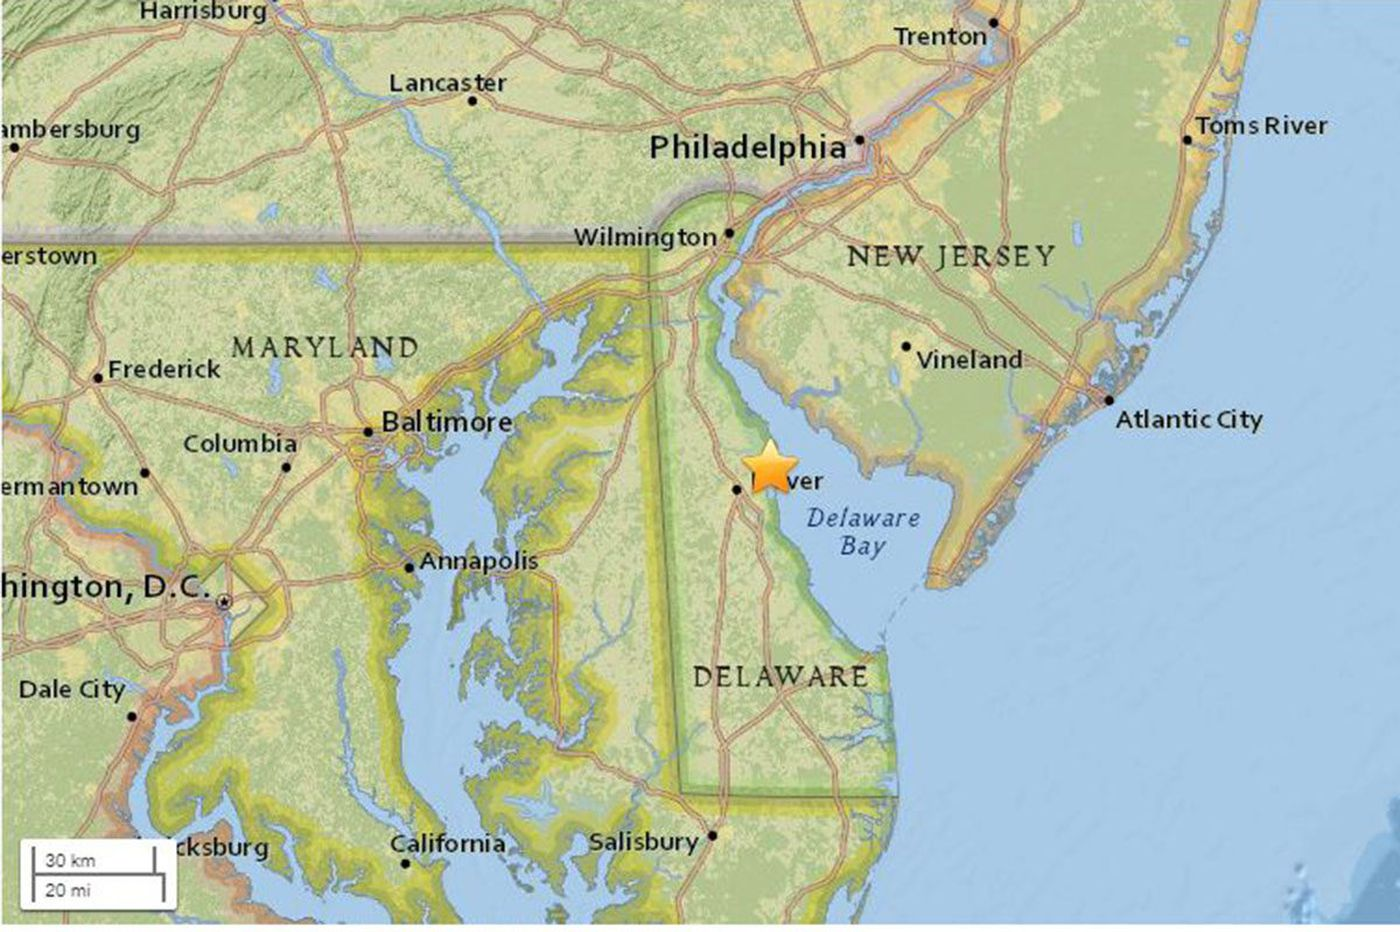 4.1 magnitude Delaware earthquake shakes Philly, South Jersey region